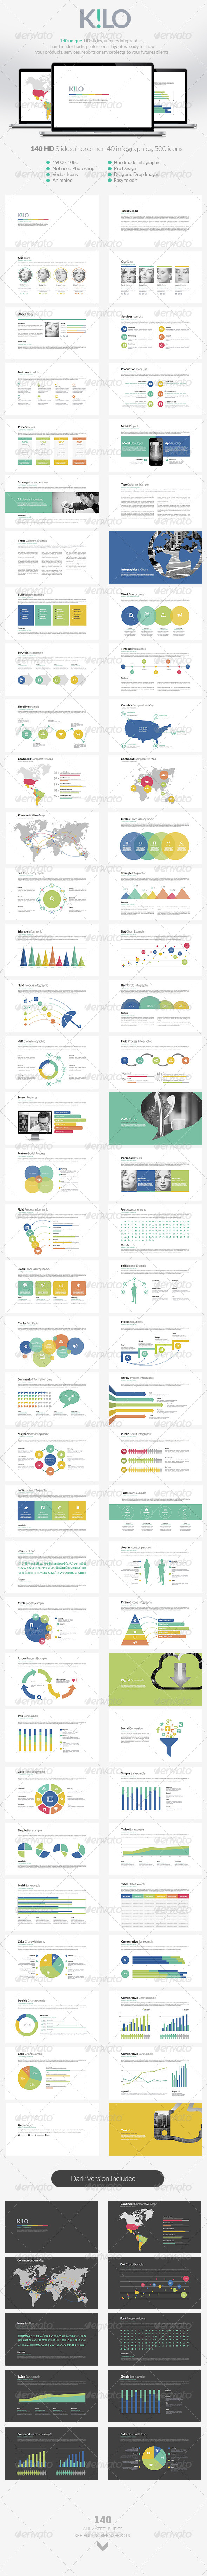 GraphicRiver Kilo Powerpoint 8564812